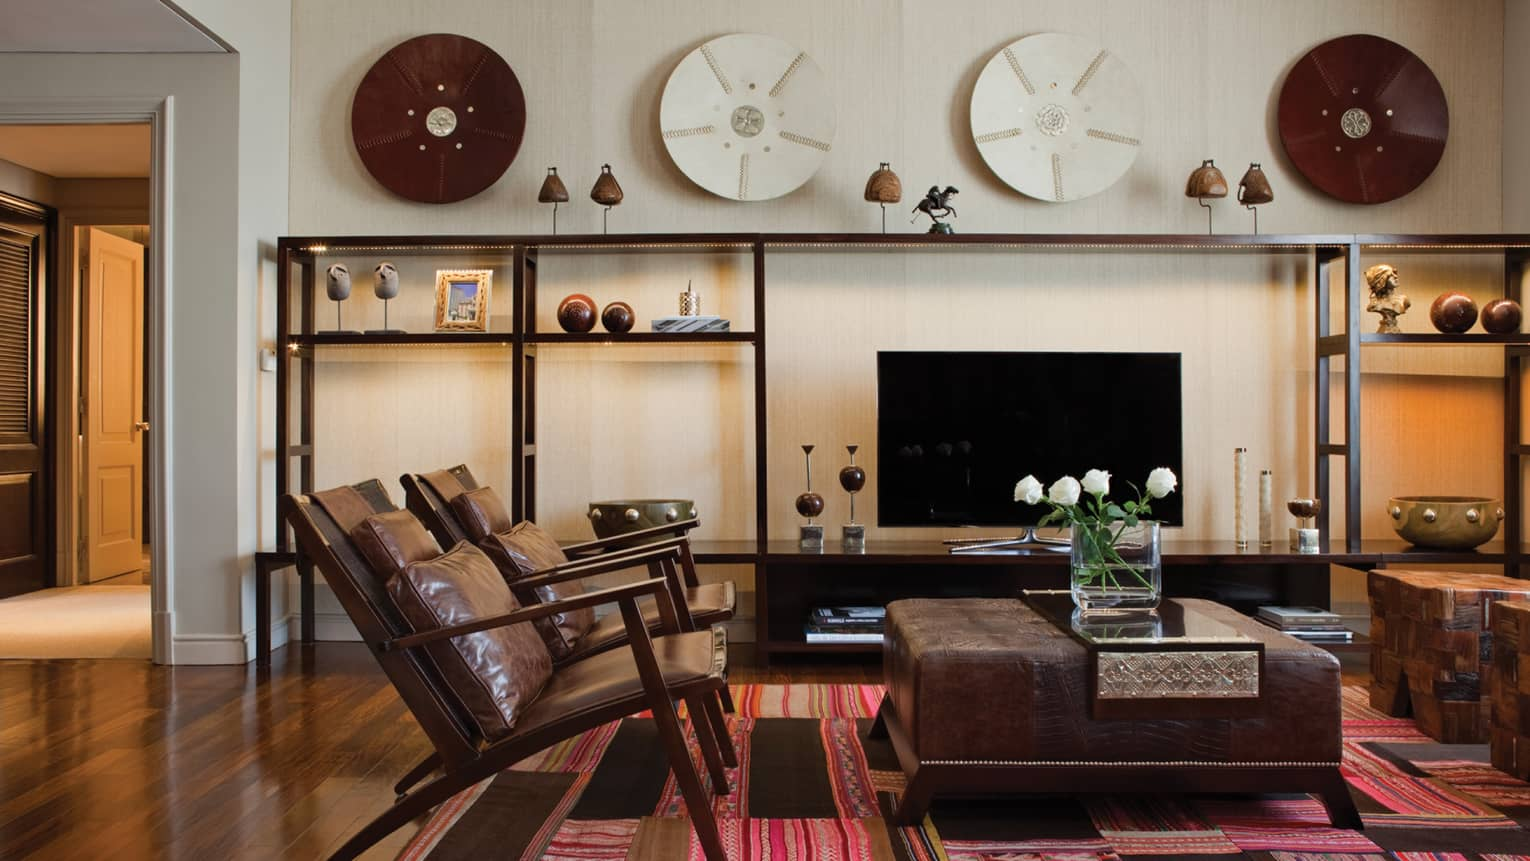 Modern brown leather armchairs and large ottoman with fresh flowers, modern and wood Argentine-inspired art